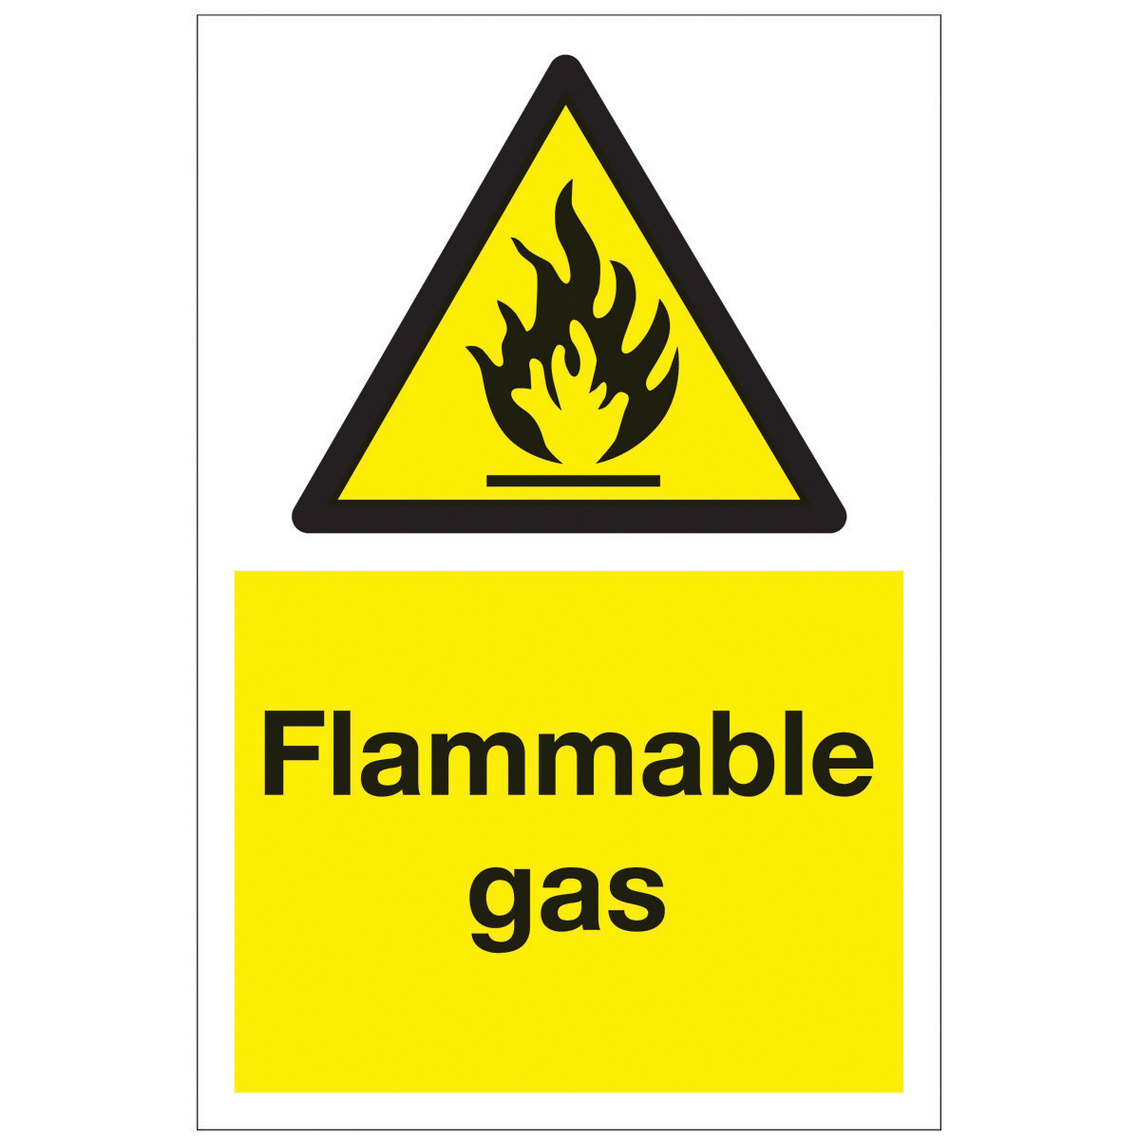 Safety Symbols For Flammable.